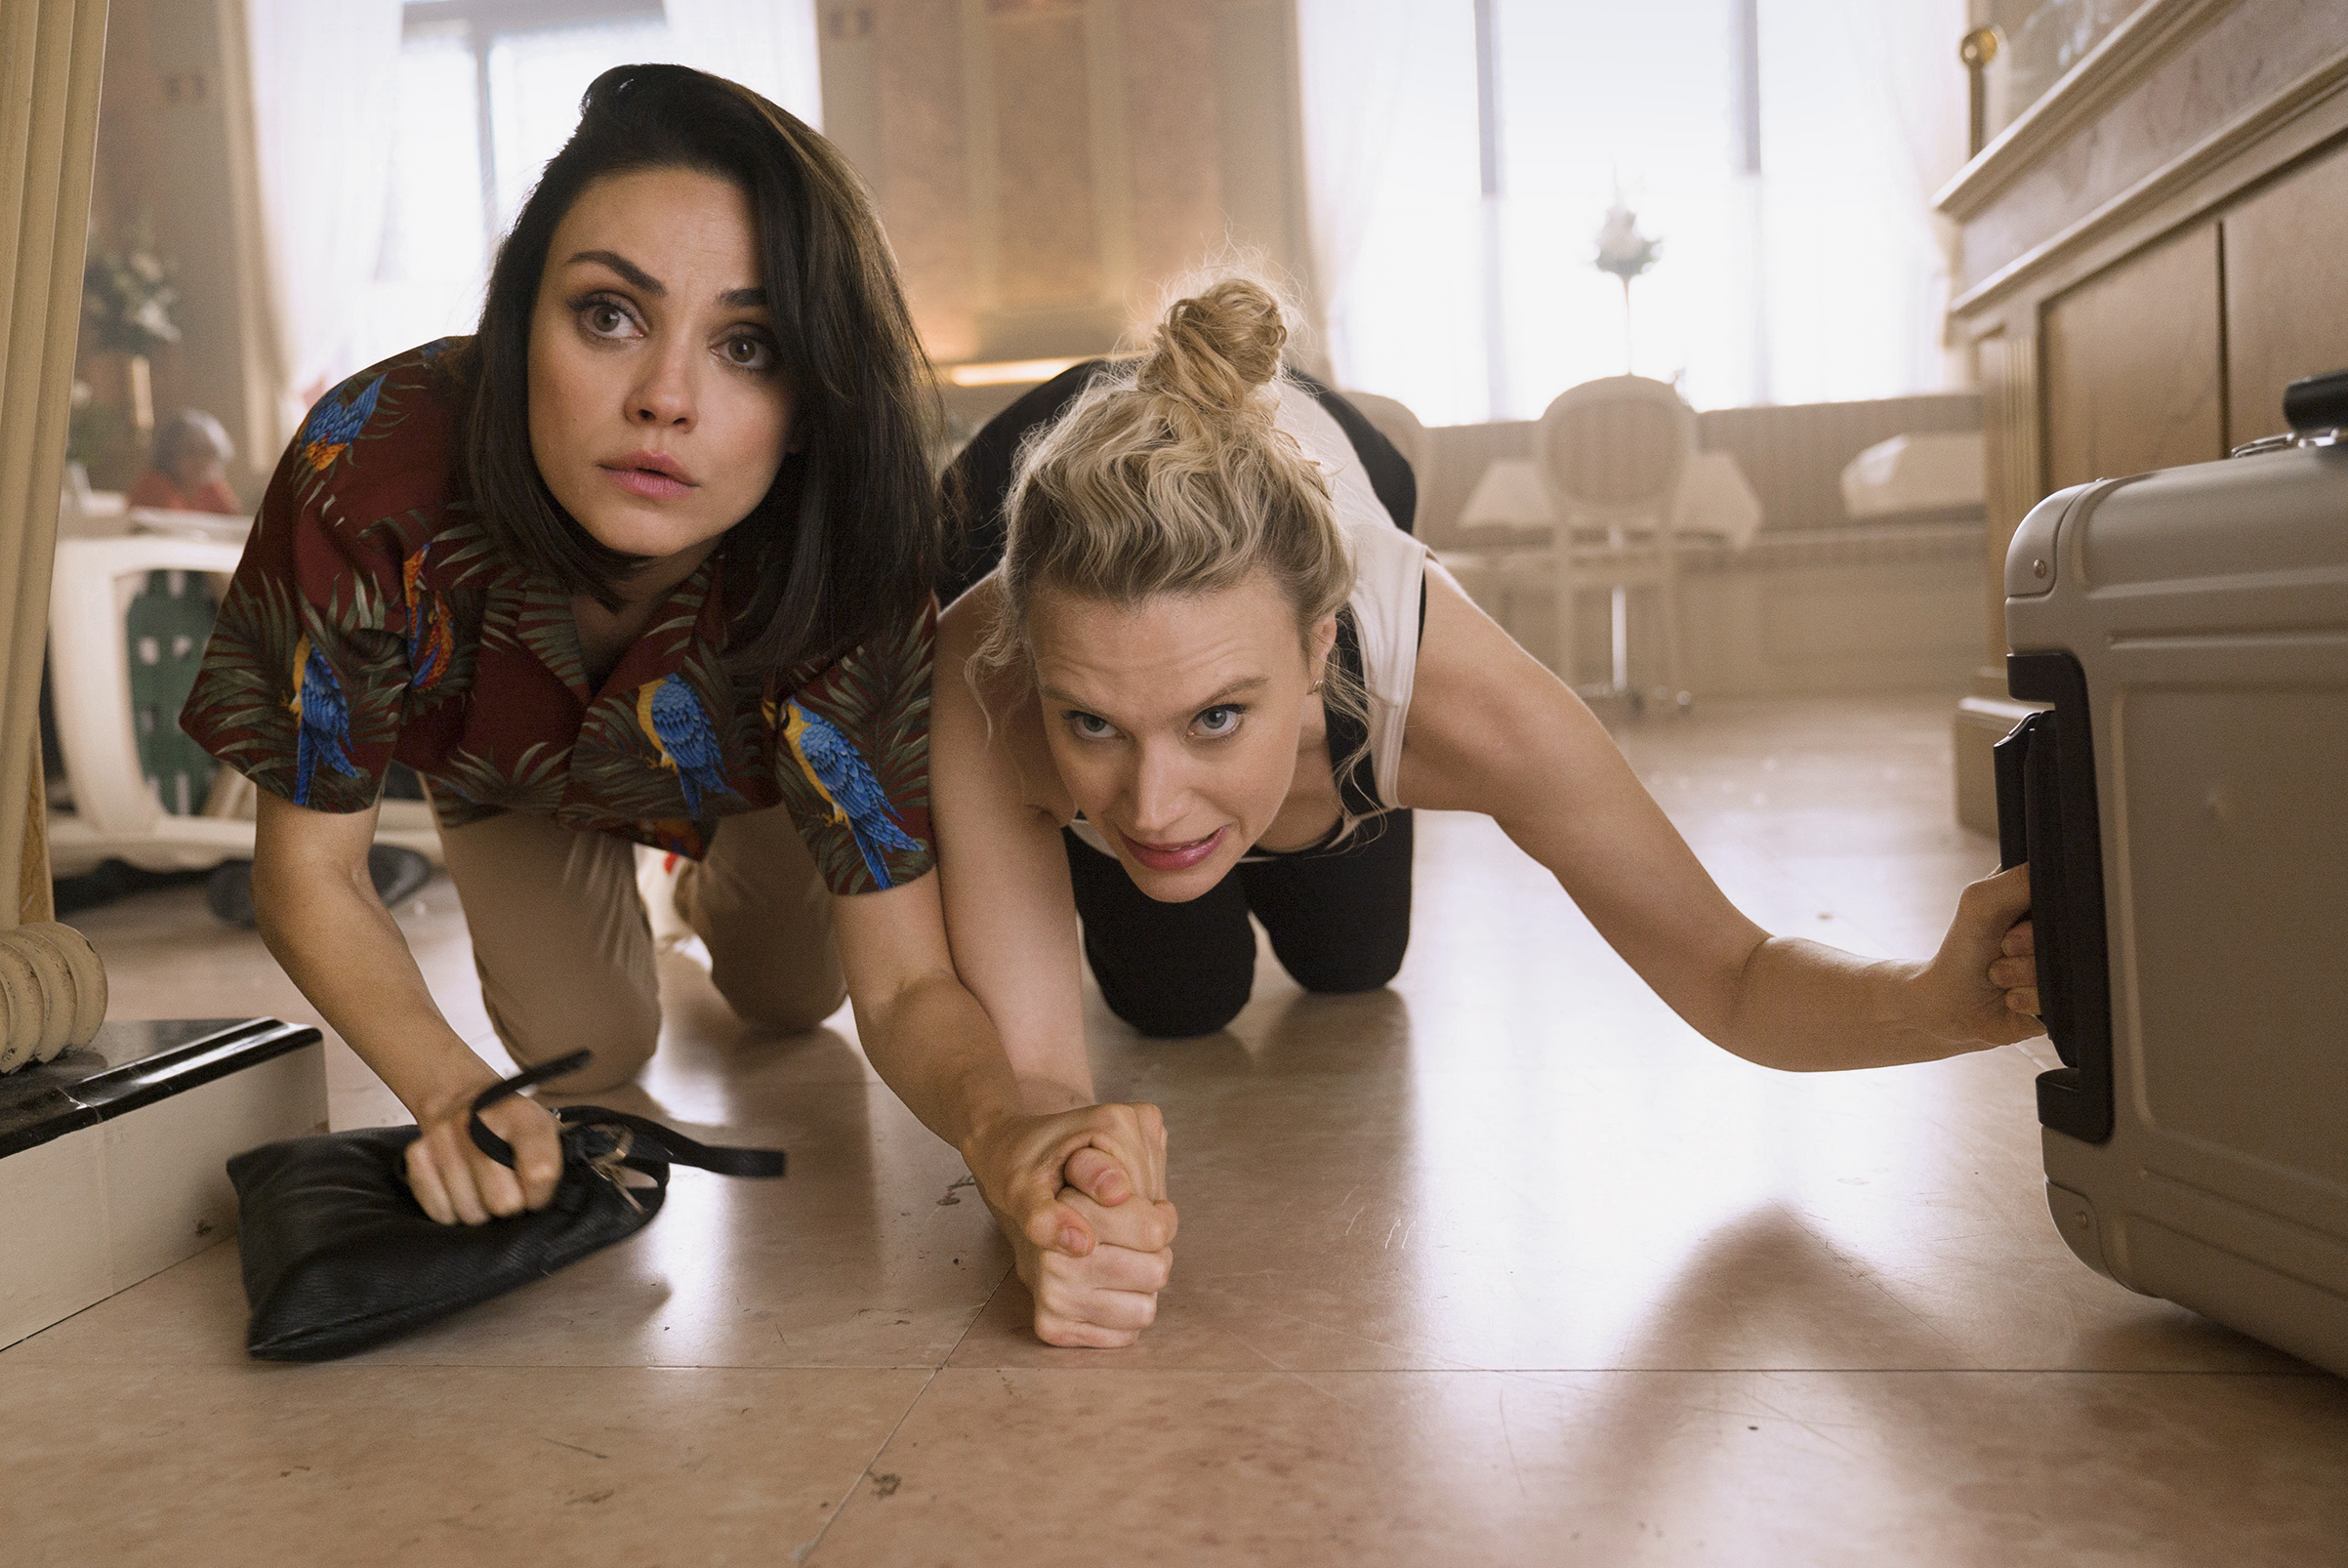 Mila Kunis and Kate McKinnon take cover on the floor with their bags in the film The Spy Who Dumped Me.